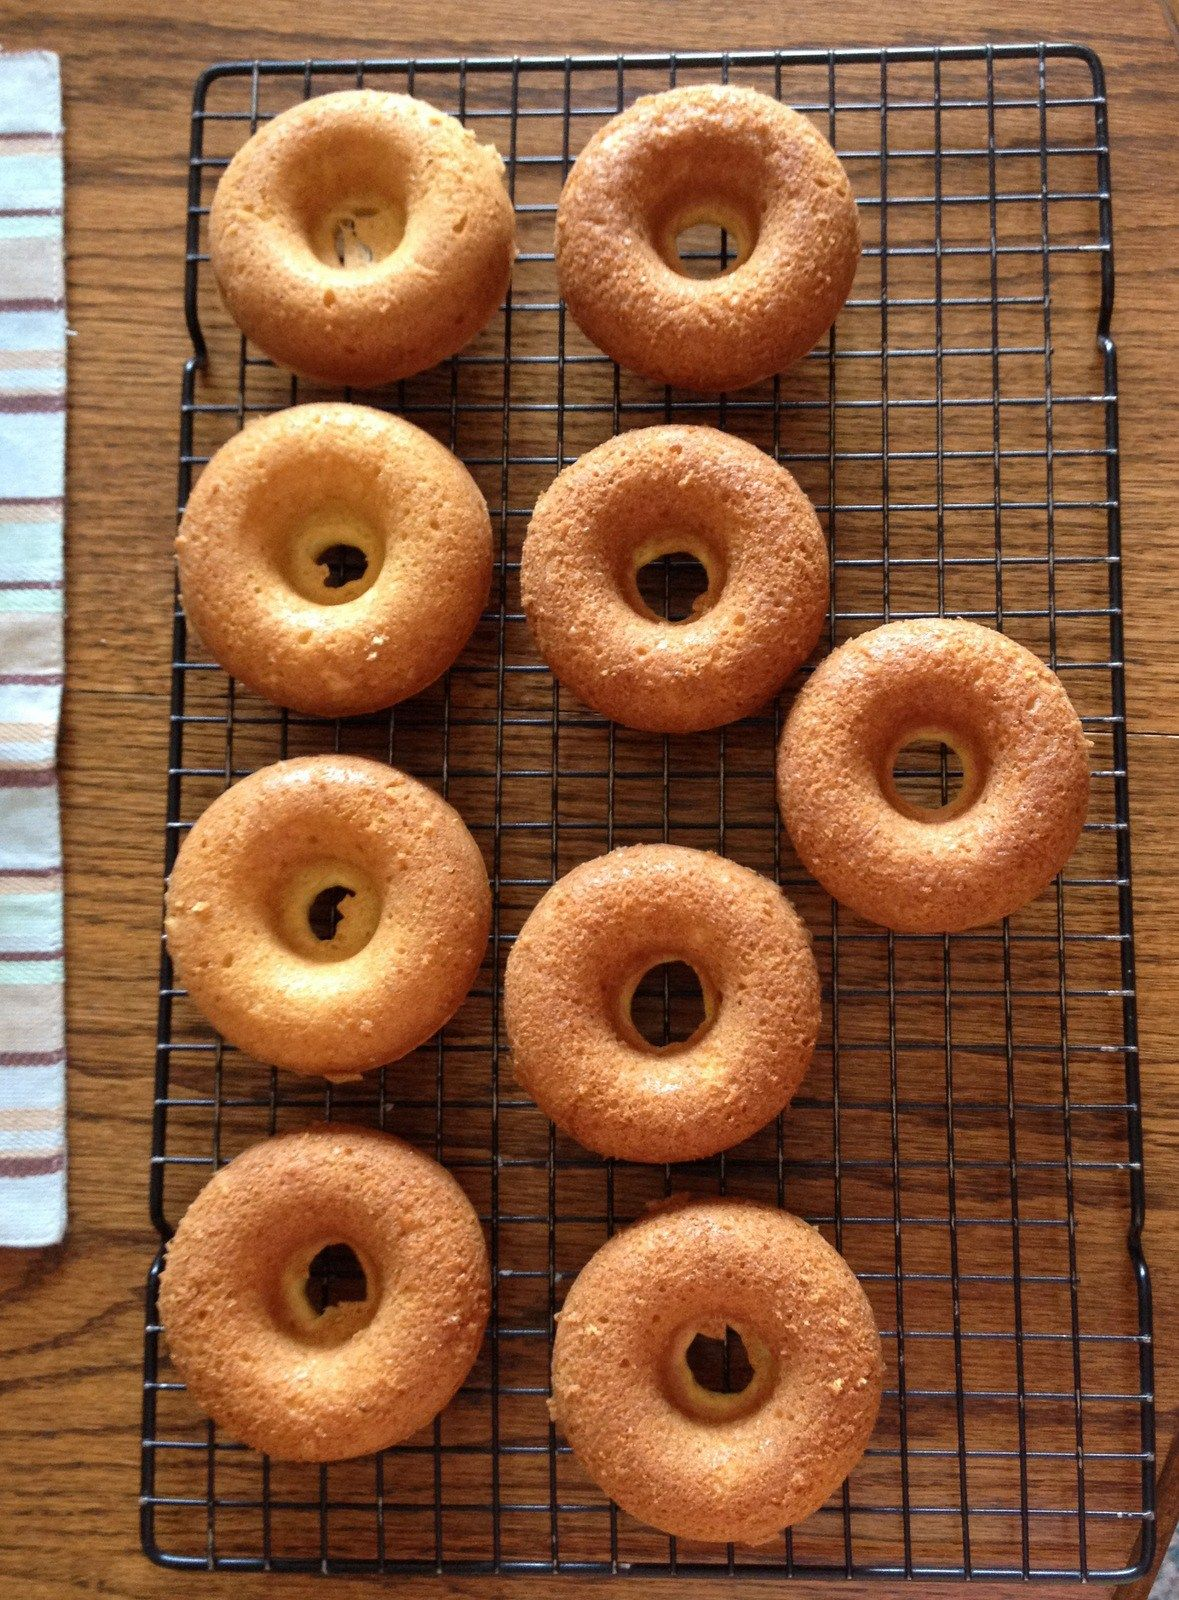 Baked Sour Cream Donuts Recipe Recipe Baked Sour Cream Donut Recipe Donut Recipes Sour Cream Donut